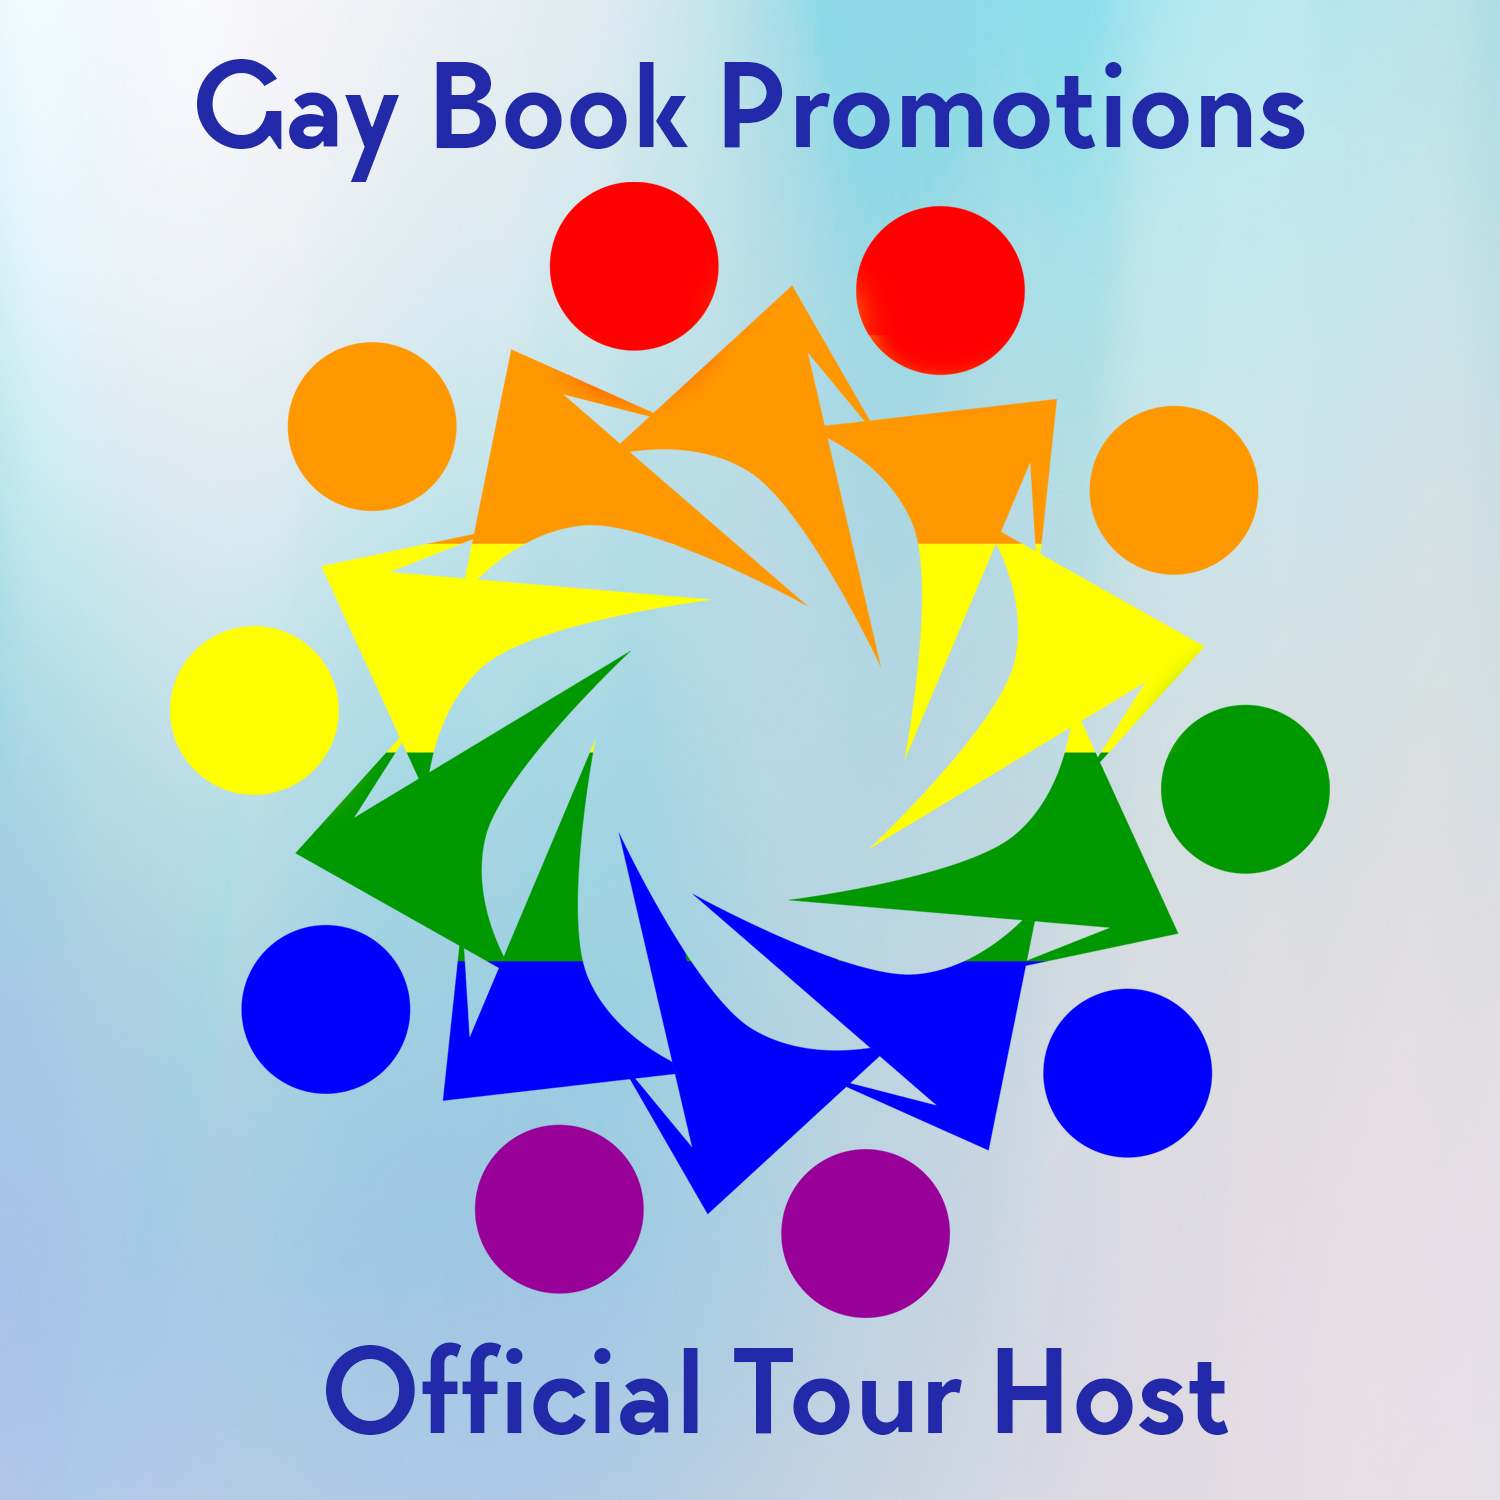 Official Tour Host for Gay Book Promotions